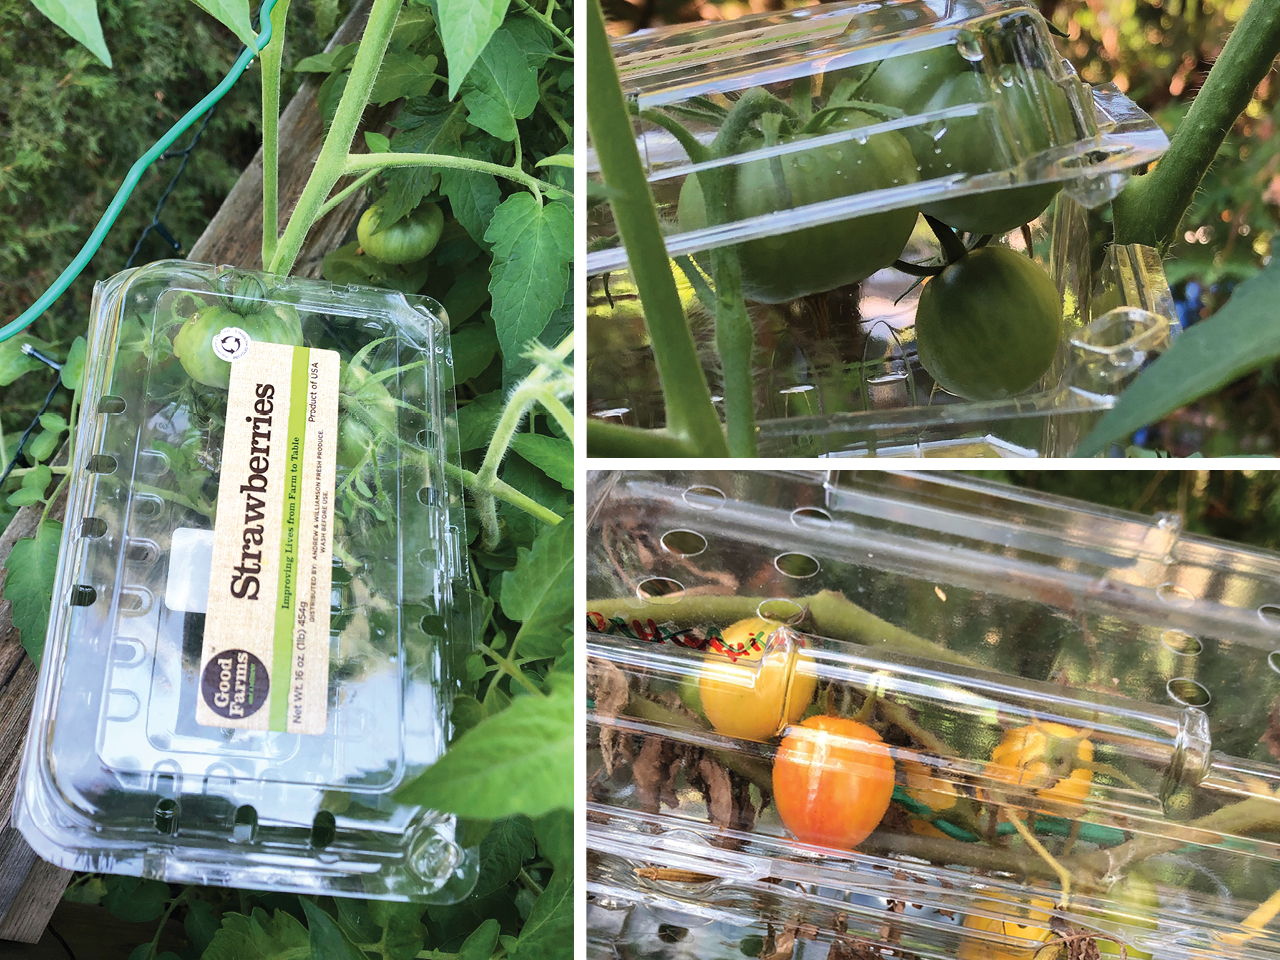 Plastic produce boxes protecting tomatoes growing in a garden